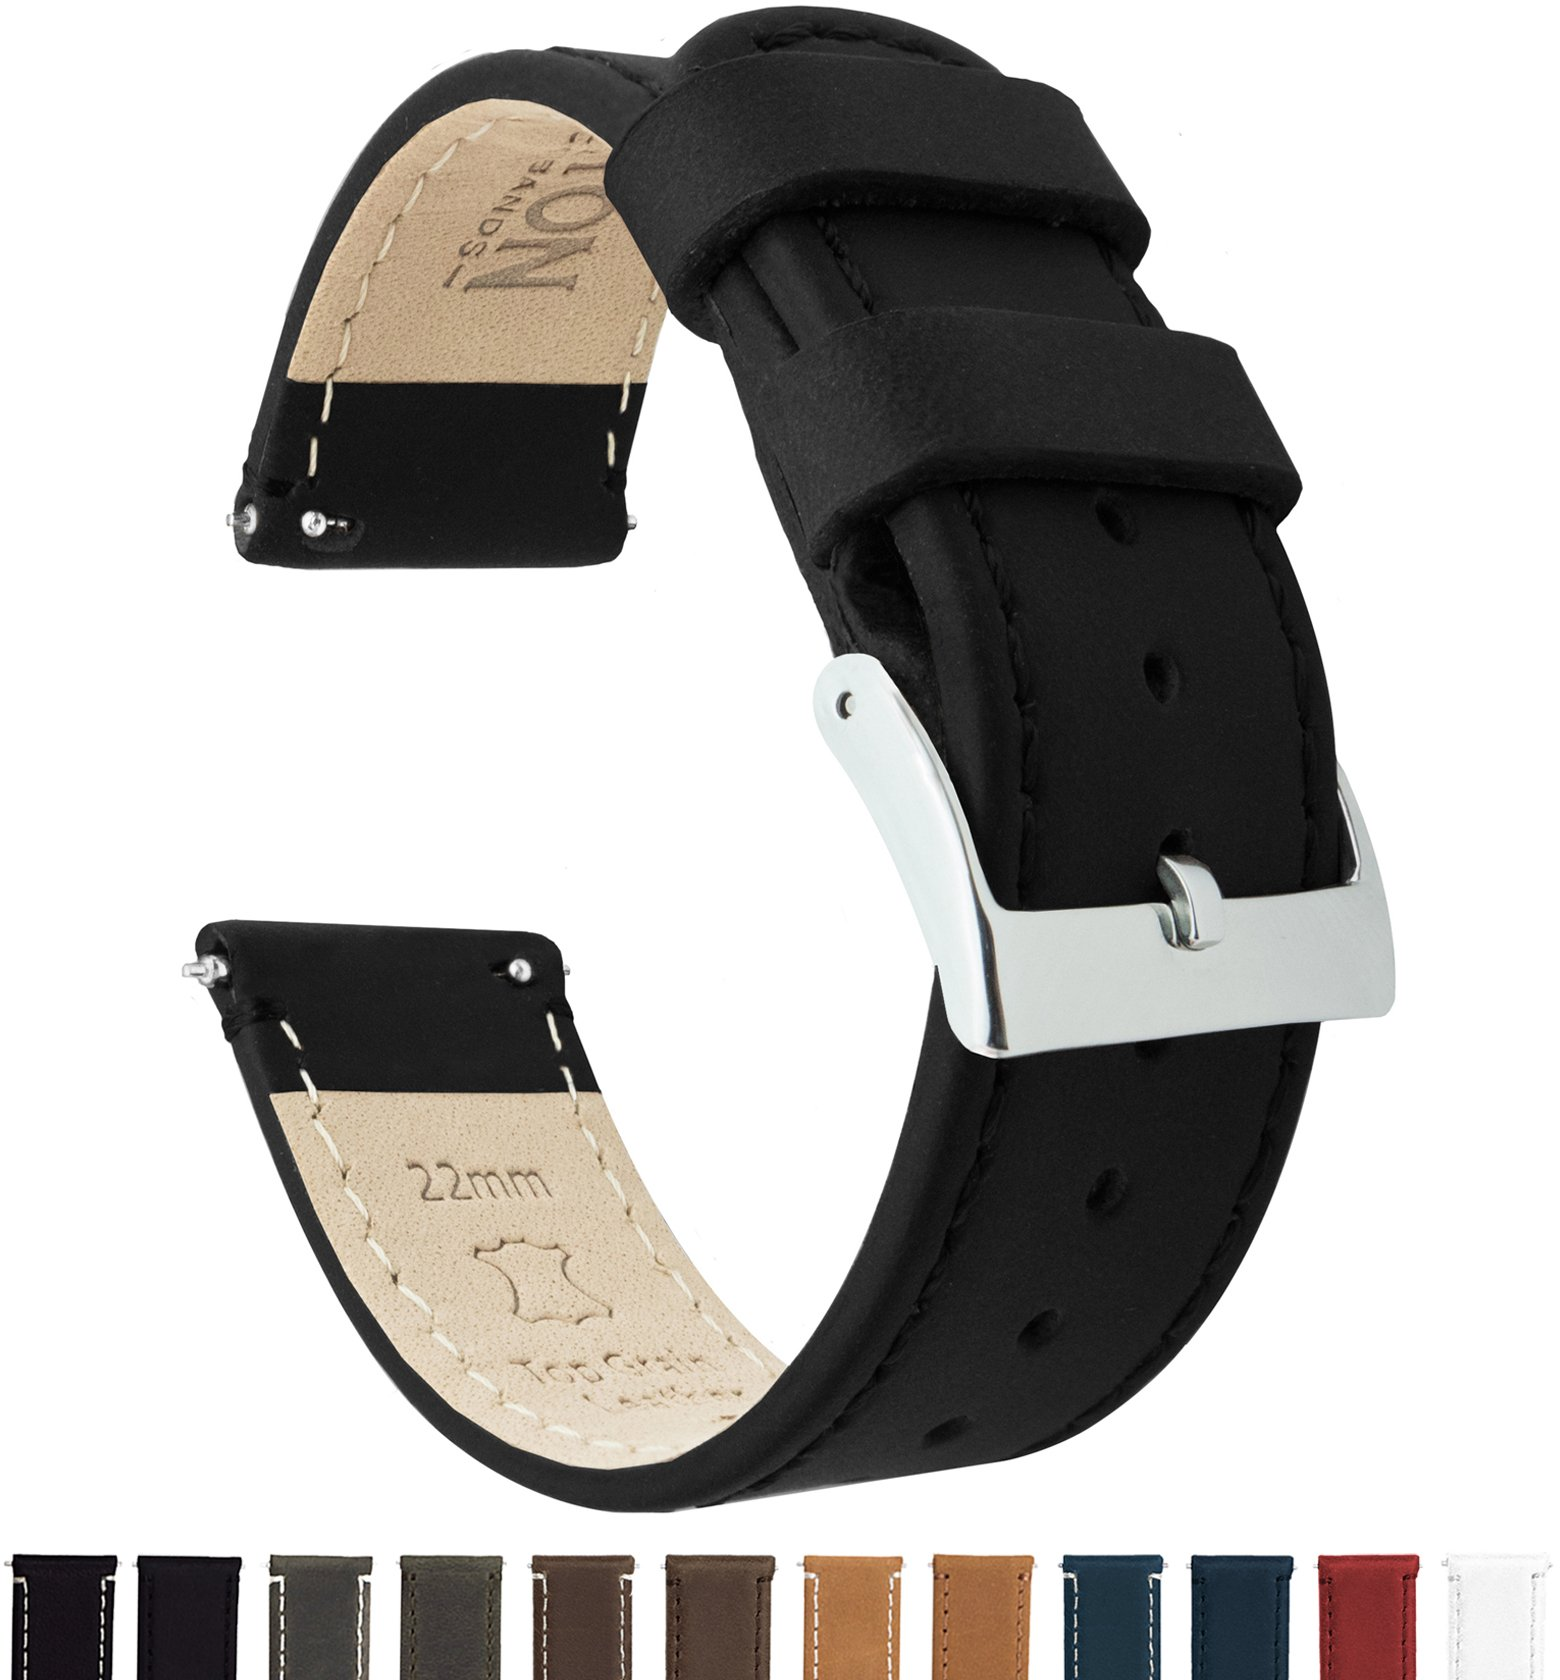 Barton Quick Release - Top Grain Leather Watch Band Strap - Choice of Width - 16mm, 18mm, 19mm, 20mm, 21mm 22mm, 23mm or 24mm - Black 22mm by Barton Watch Bands